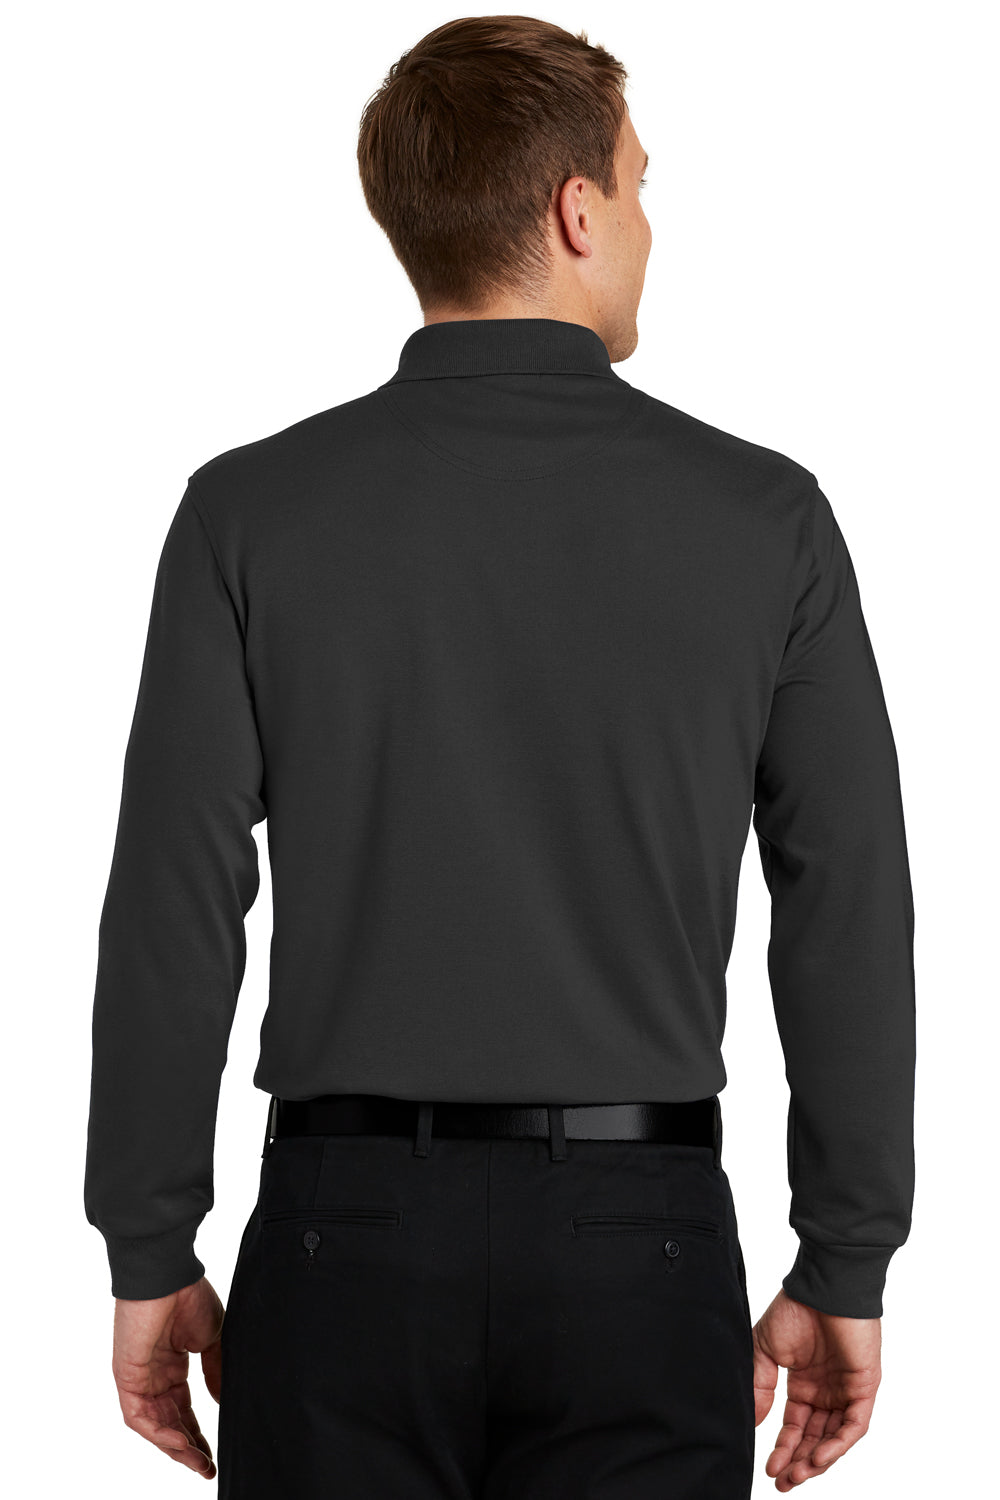 Port Authority K455LS Mens Rapid Dry Moisture Wicking Long Sleeve Polo Shirt Black Back